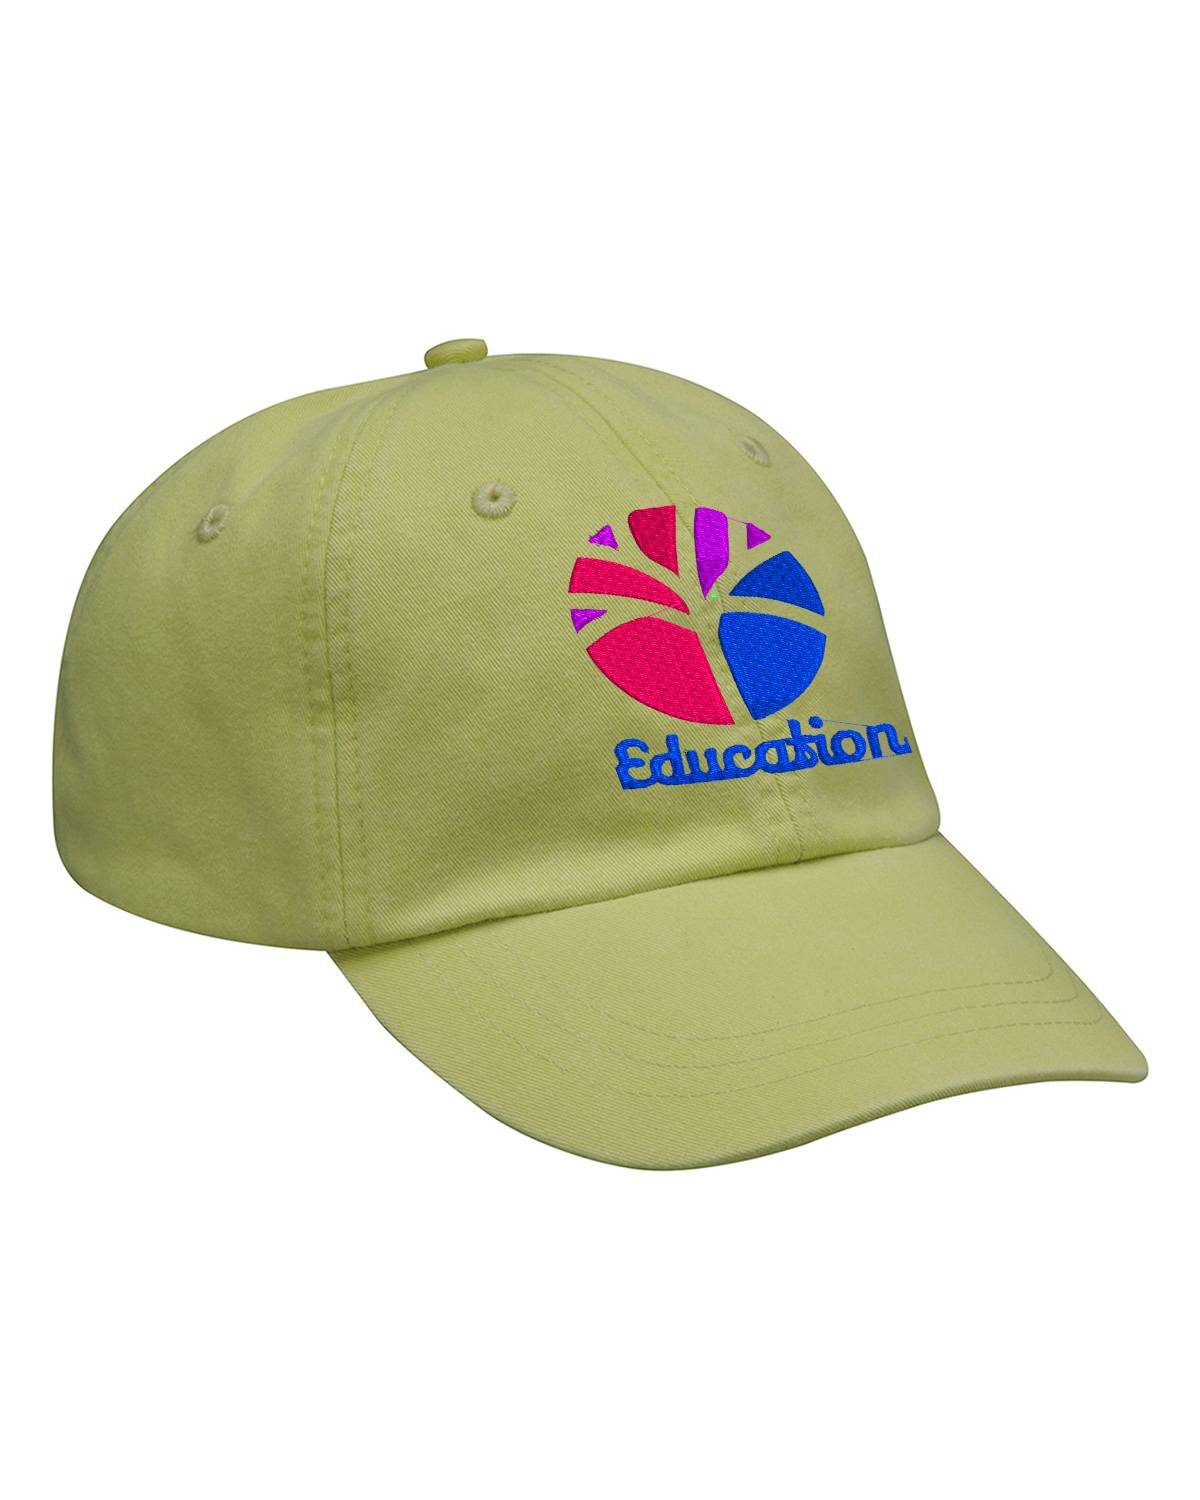 2d87e41e05d Buy Adams LP101 Adult 6-Panel Cap